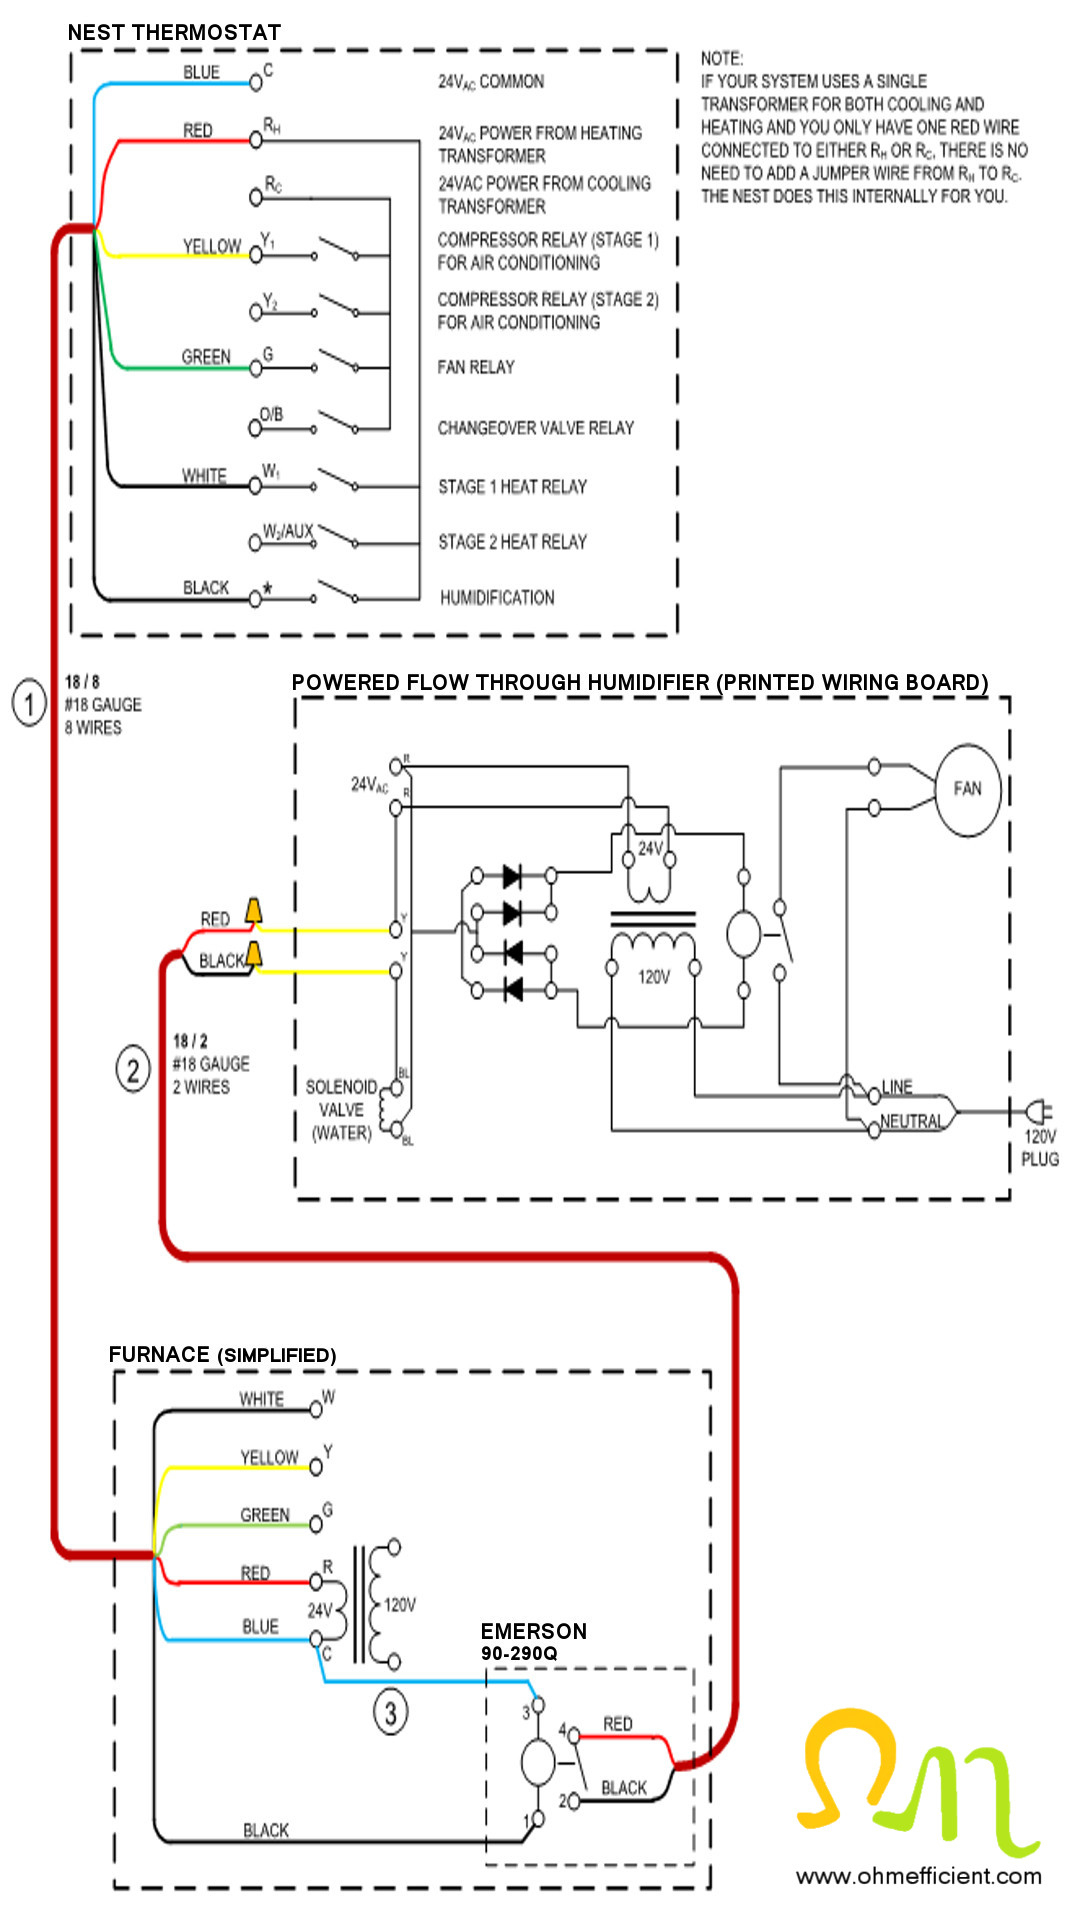 How To Connect & Setup A Nest Thermostat To Function As A Humidistat - Nest Wiring Diagram Single Stage